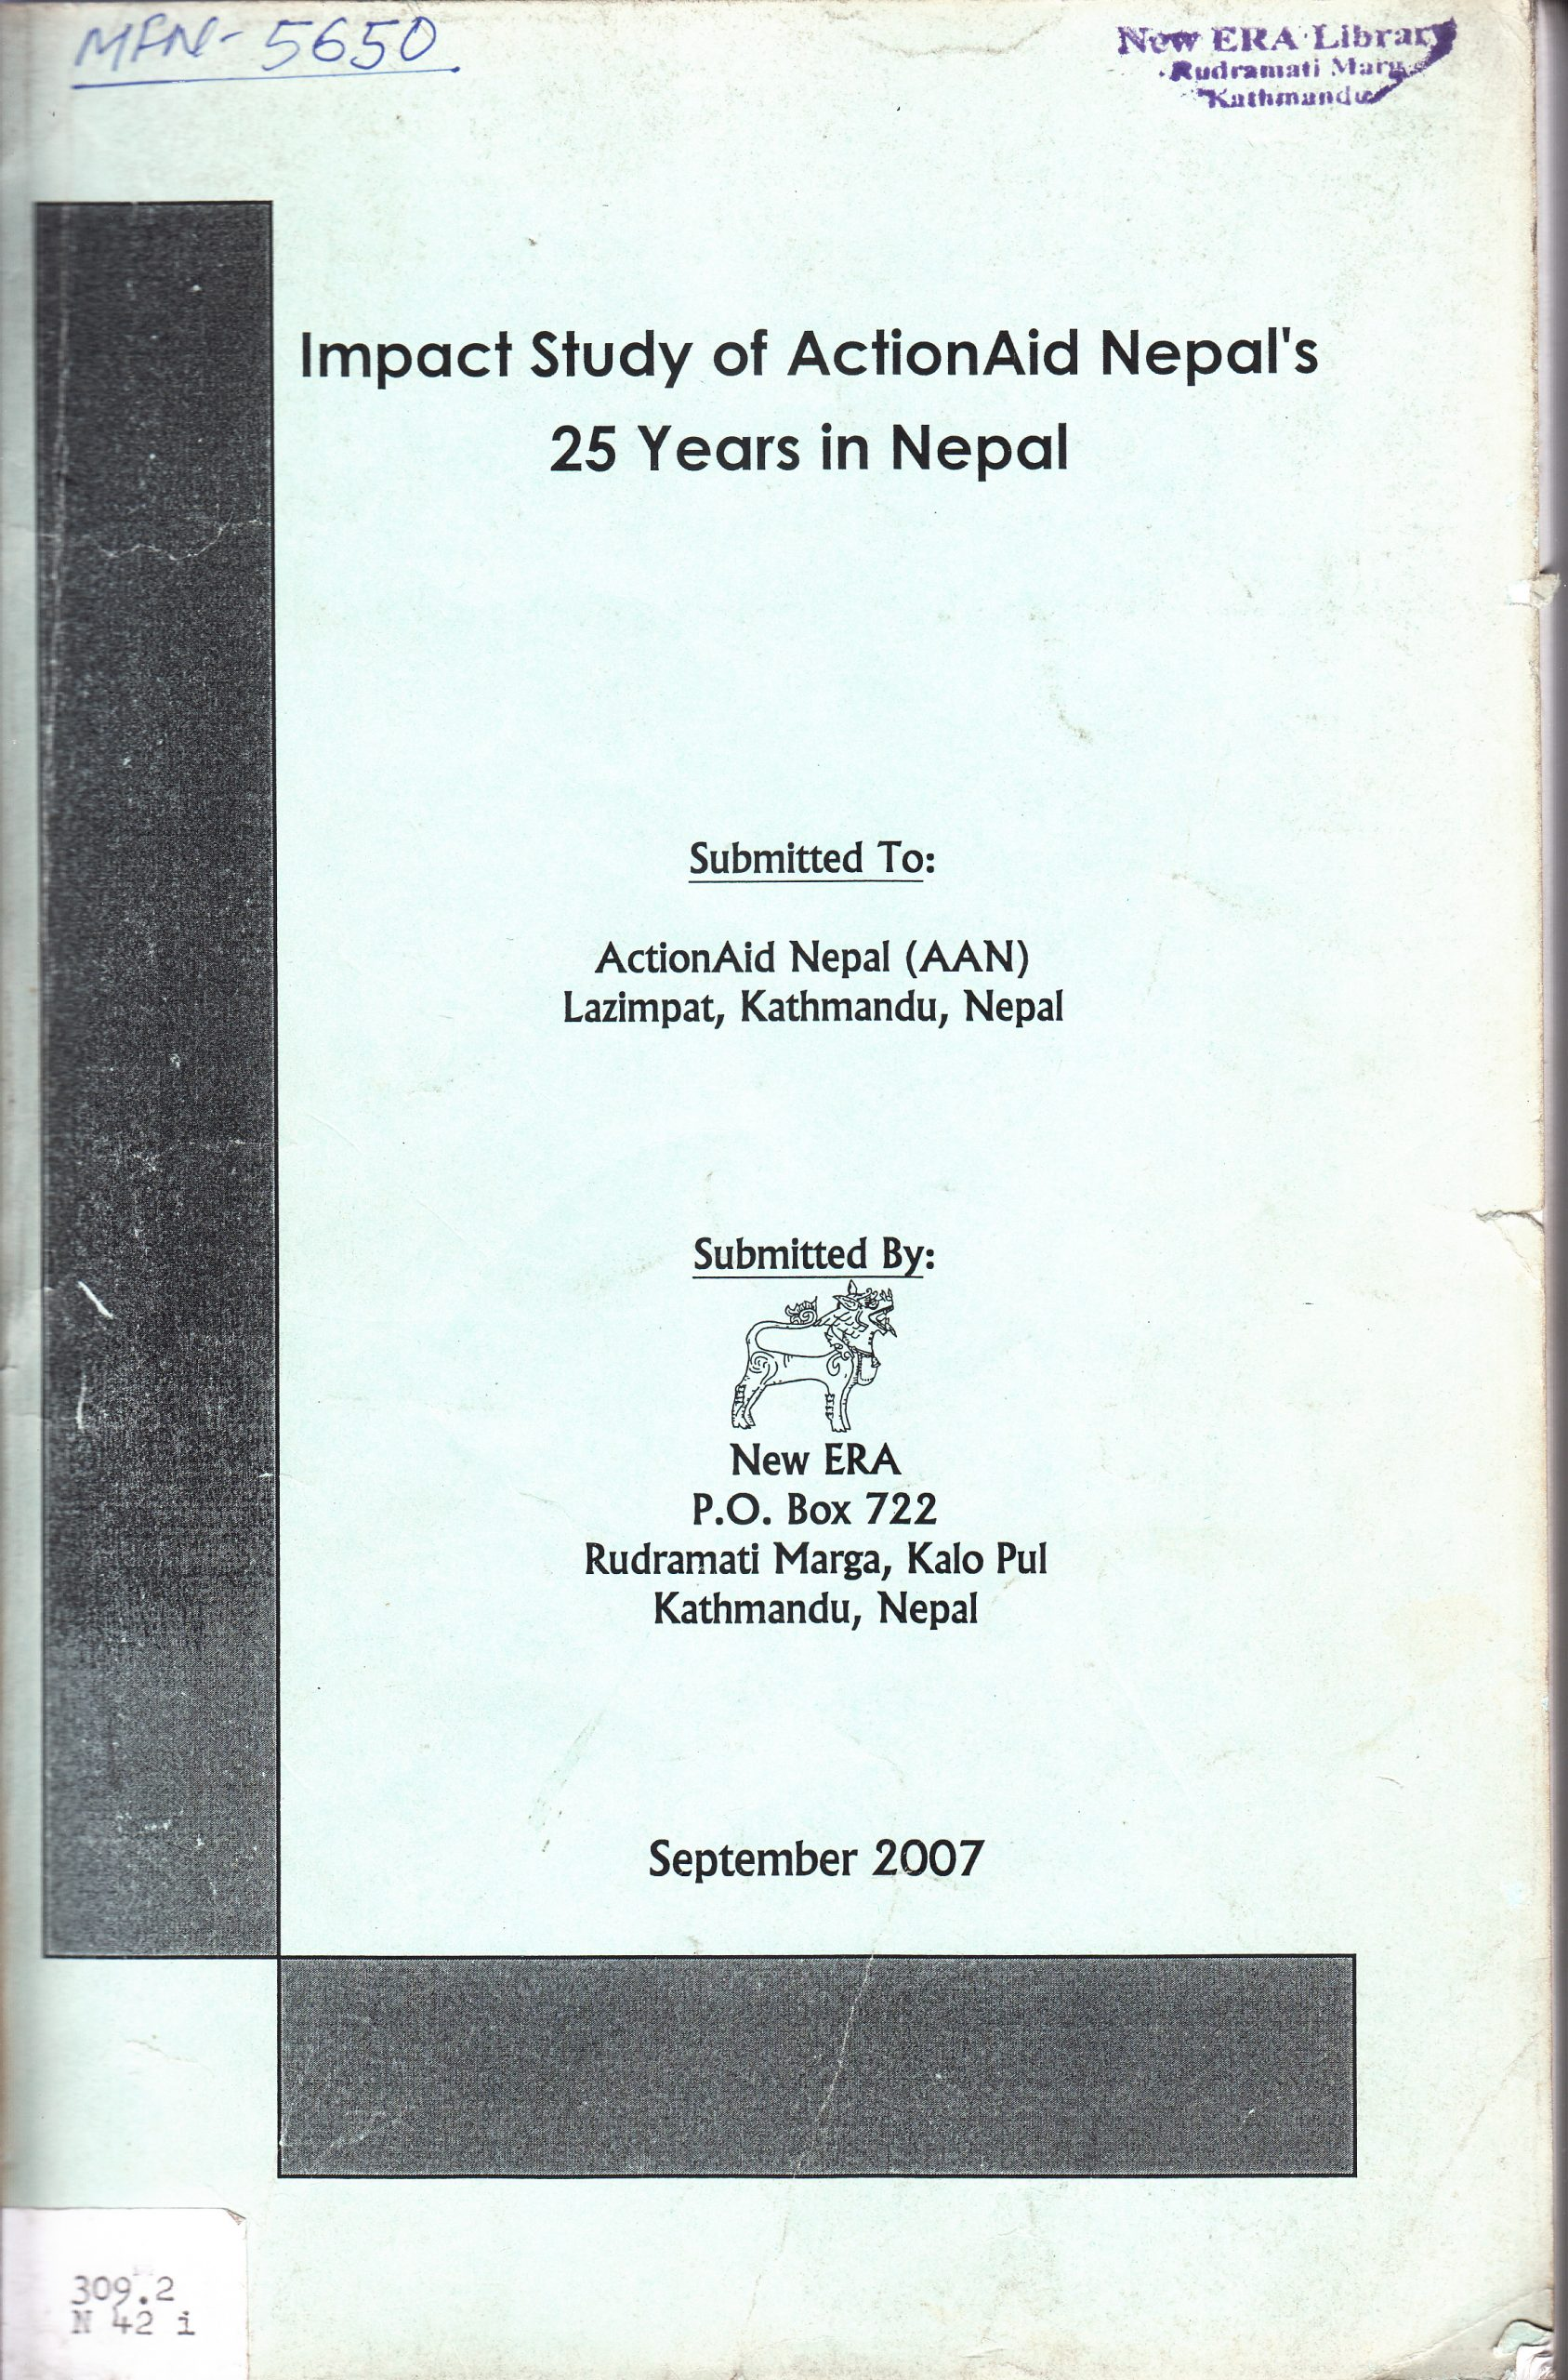 Impact Study of ActionAid Nepal 25 Years in Nepal